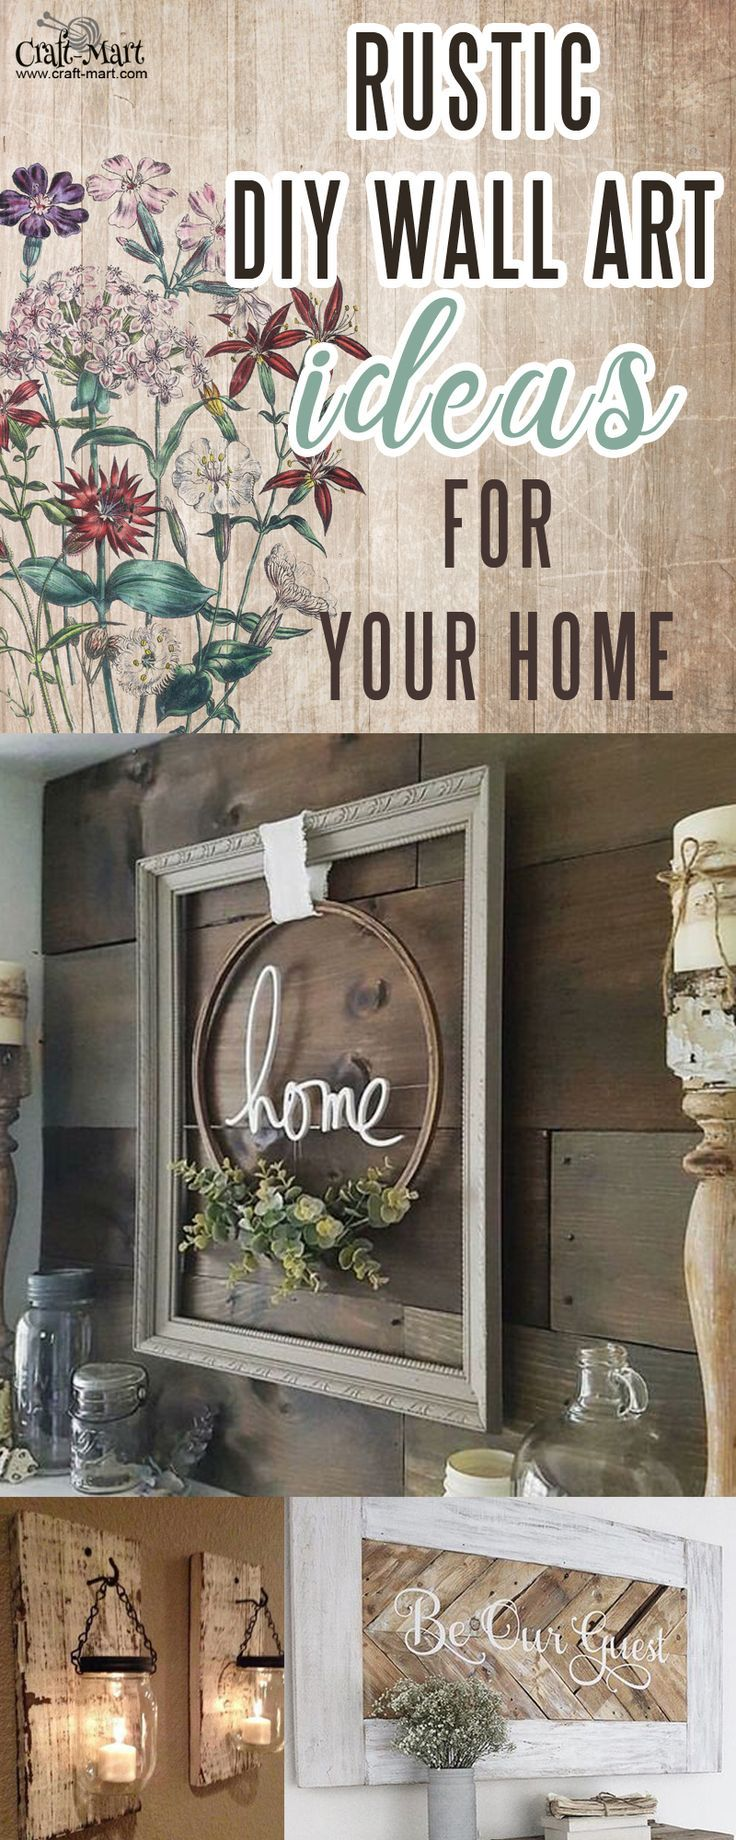 rustic wall art u decor ideas that will transform your home